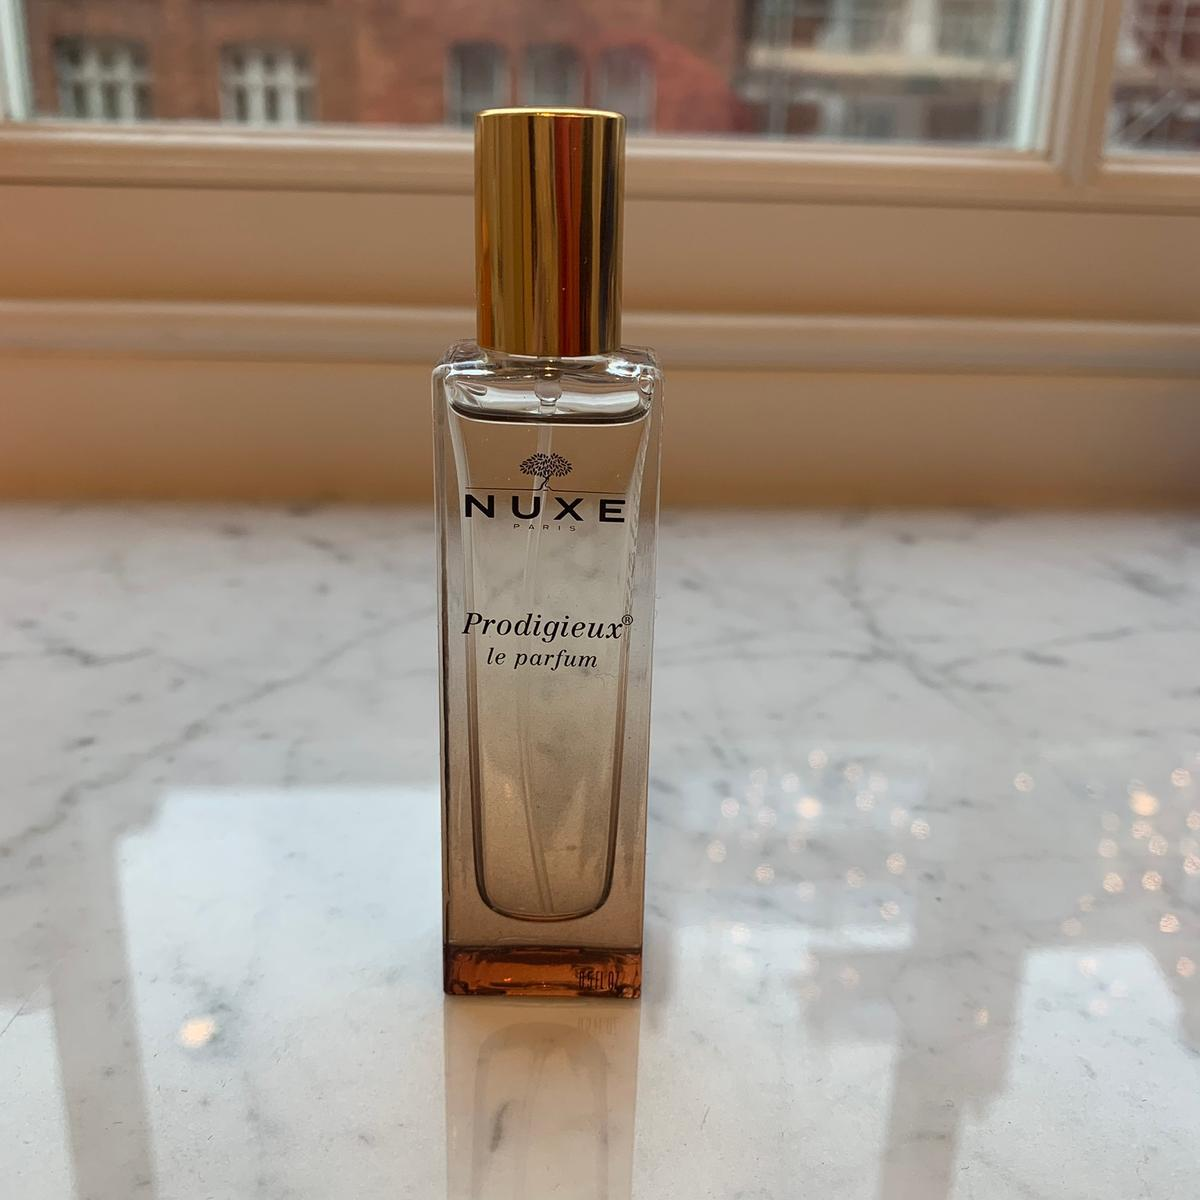 New Nuxe Parfum In W1k London For 800 For Sale Shpock